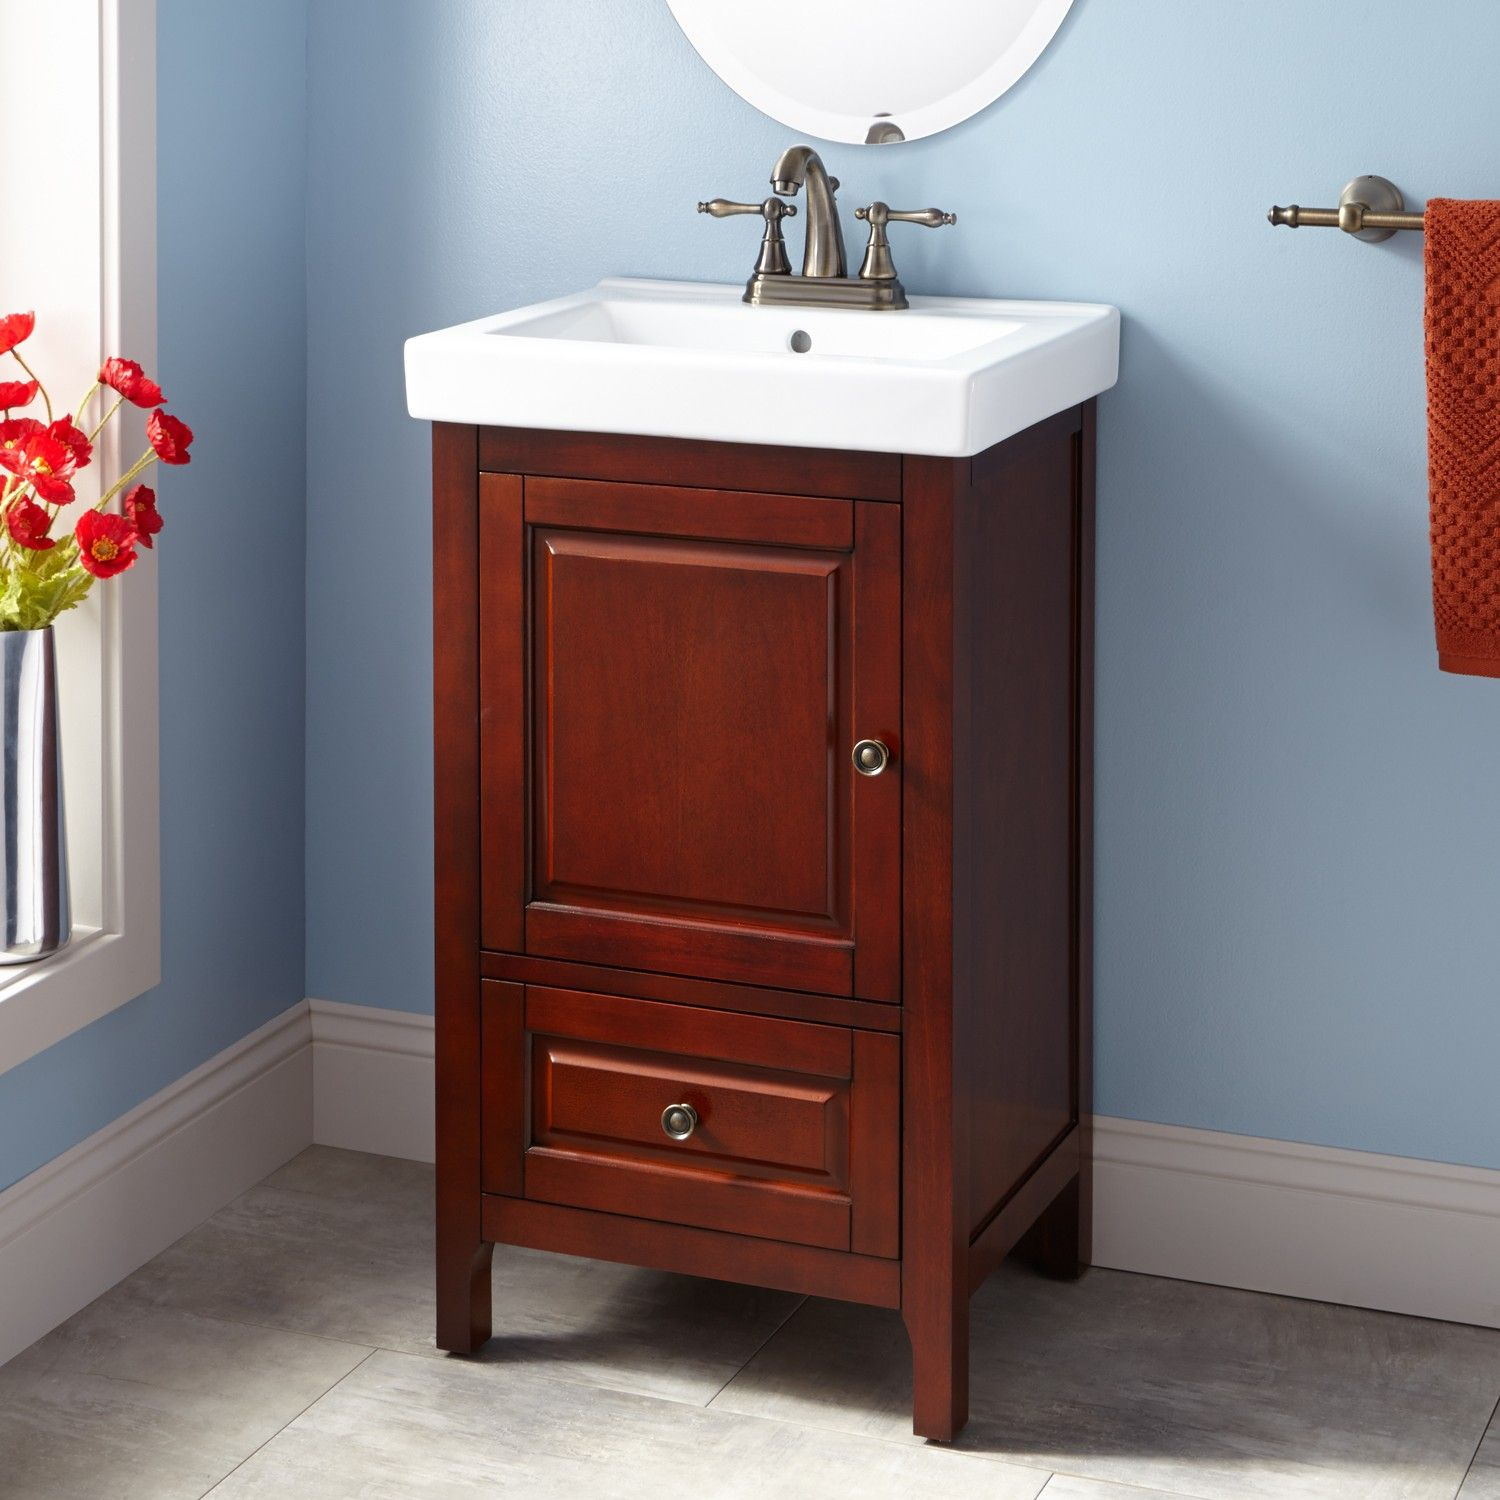 Rev A Shelf 445vcg20 8 445 Series Vanity Height Grooming 0 Rev A Shelf Cabinets Organization Cabinet Pull Out